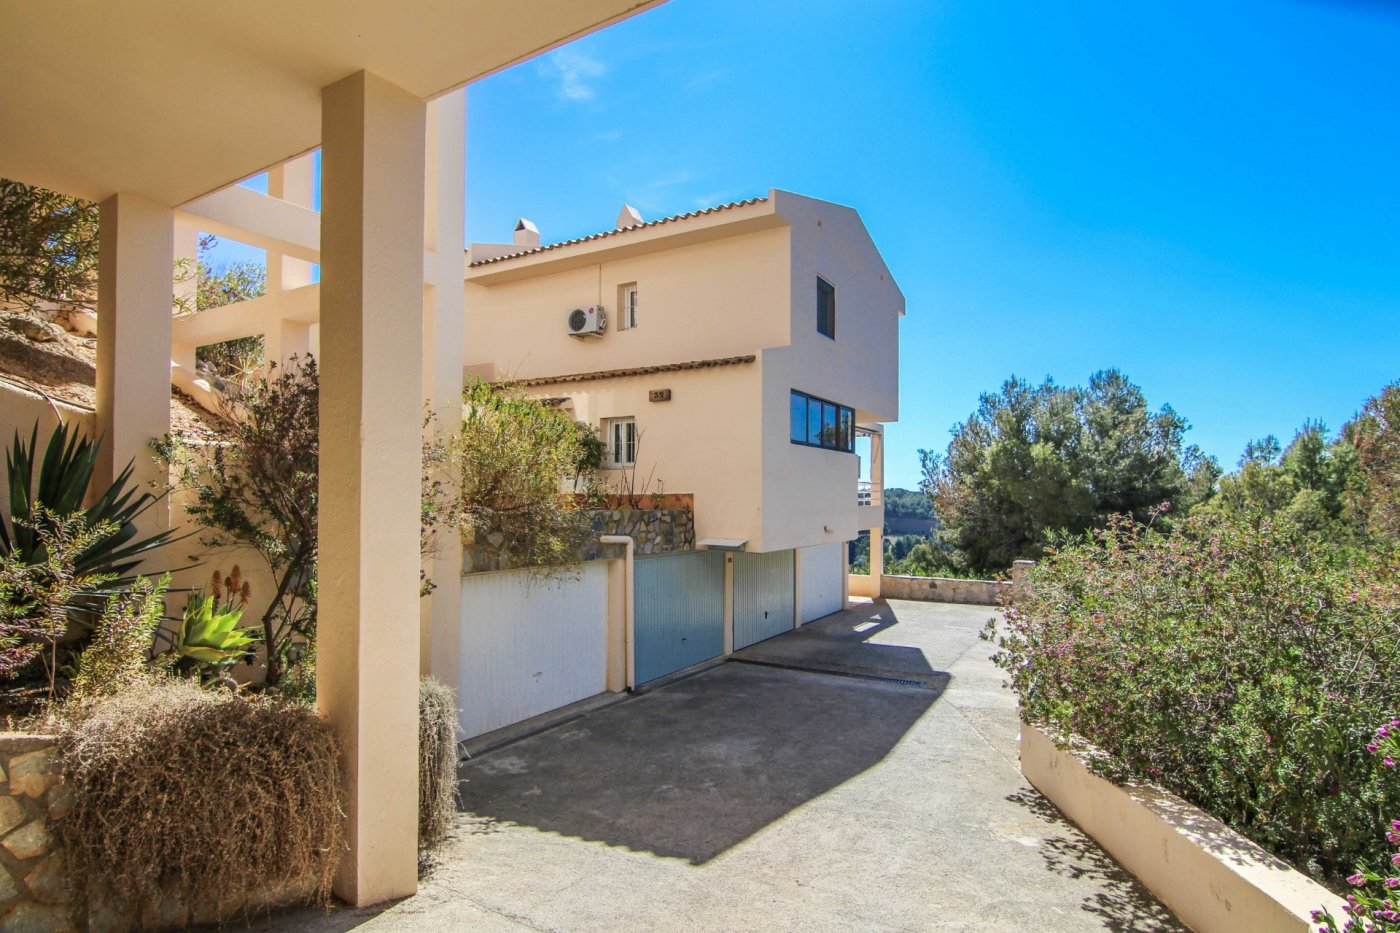 Townhouse - Ready To Move And Live - Altea - Altea